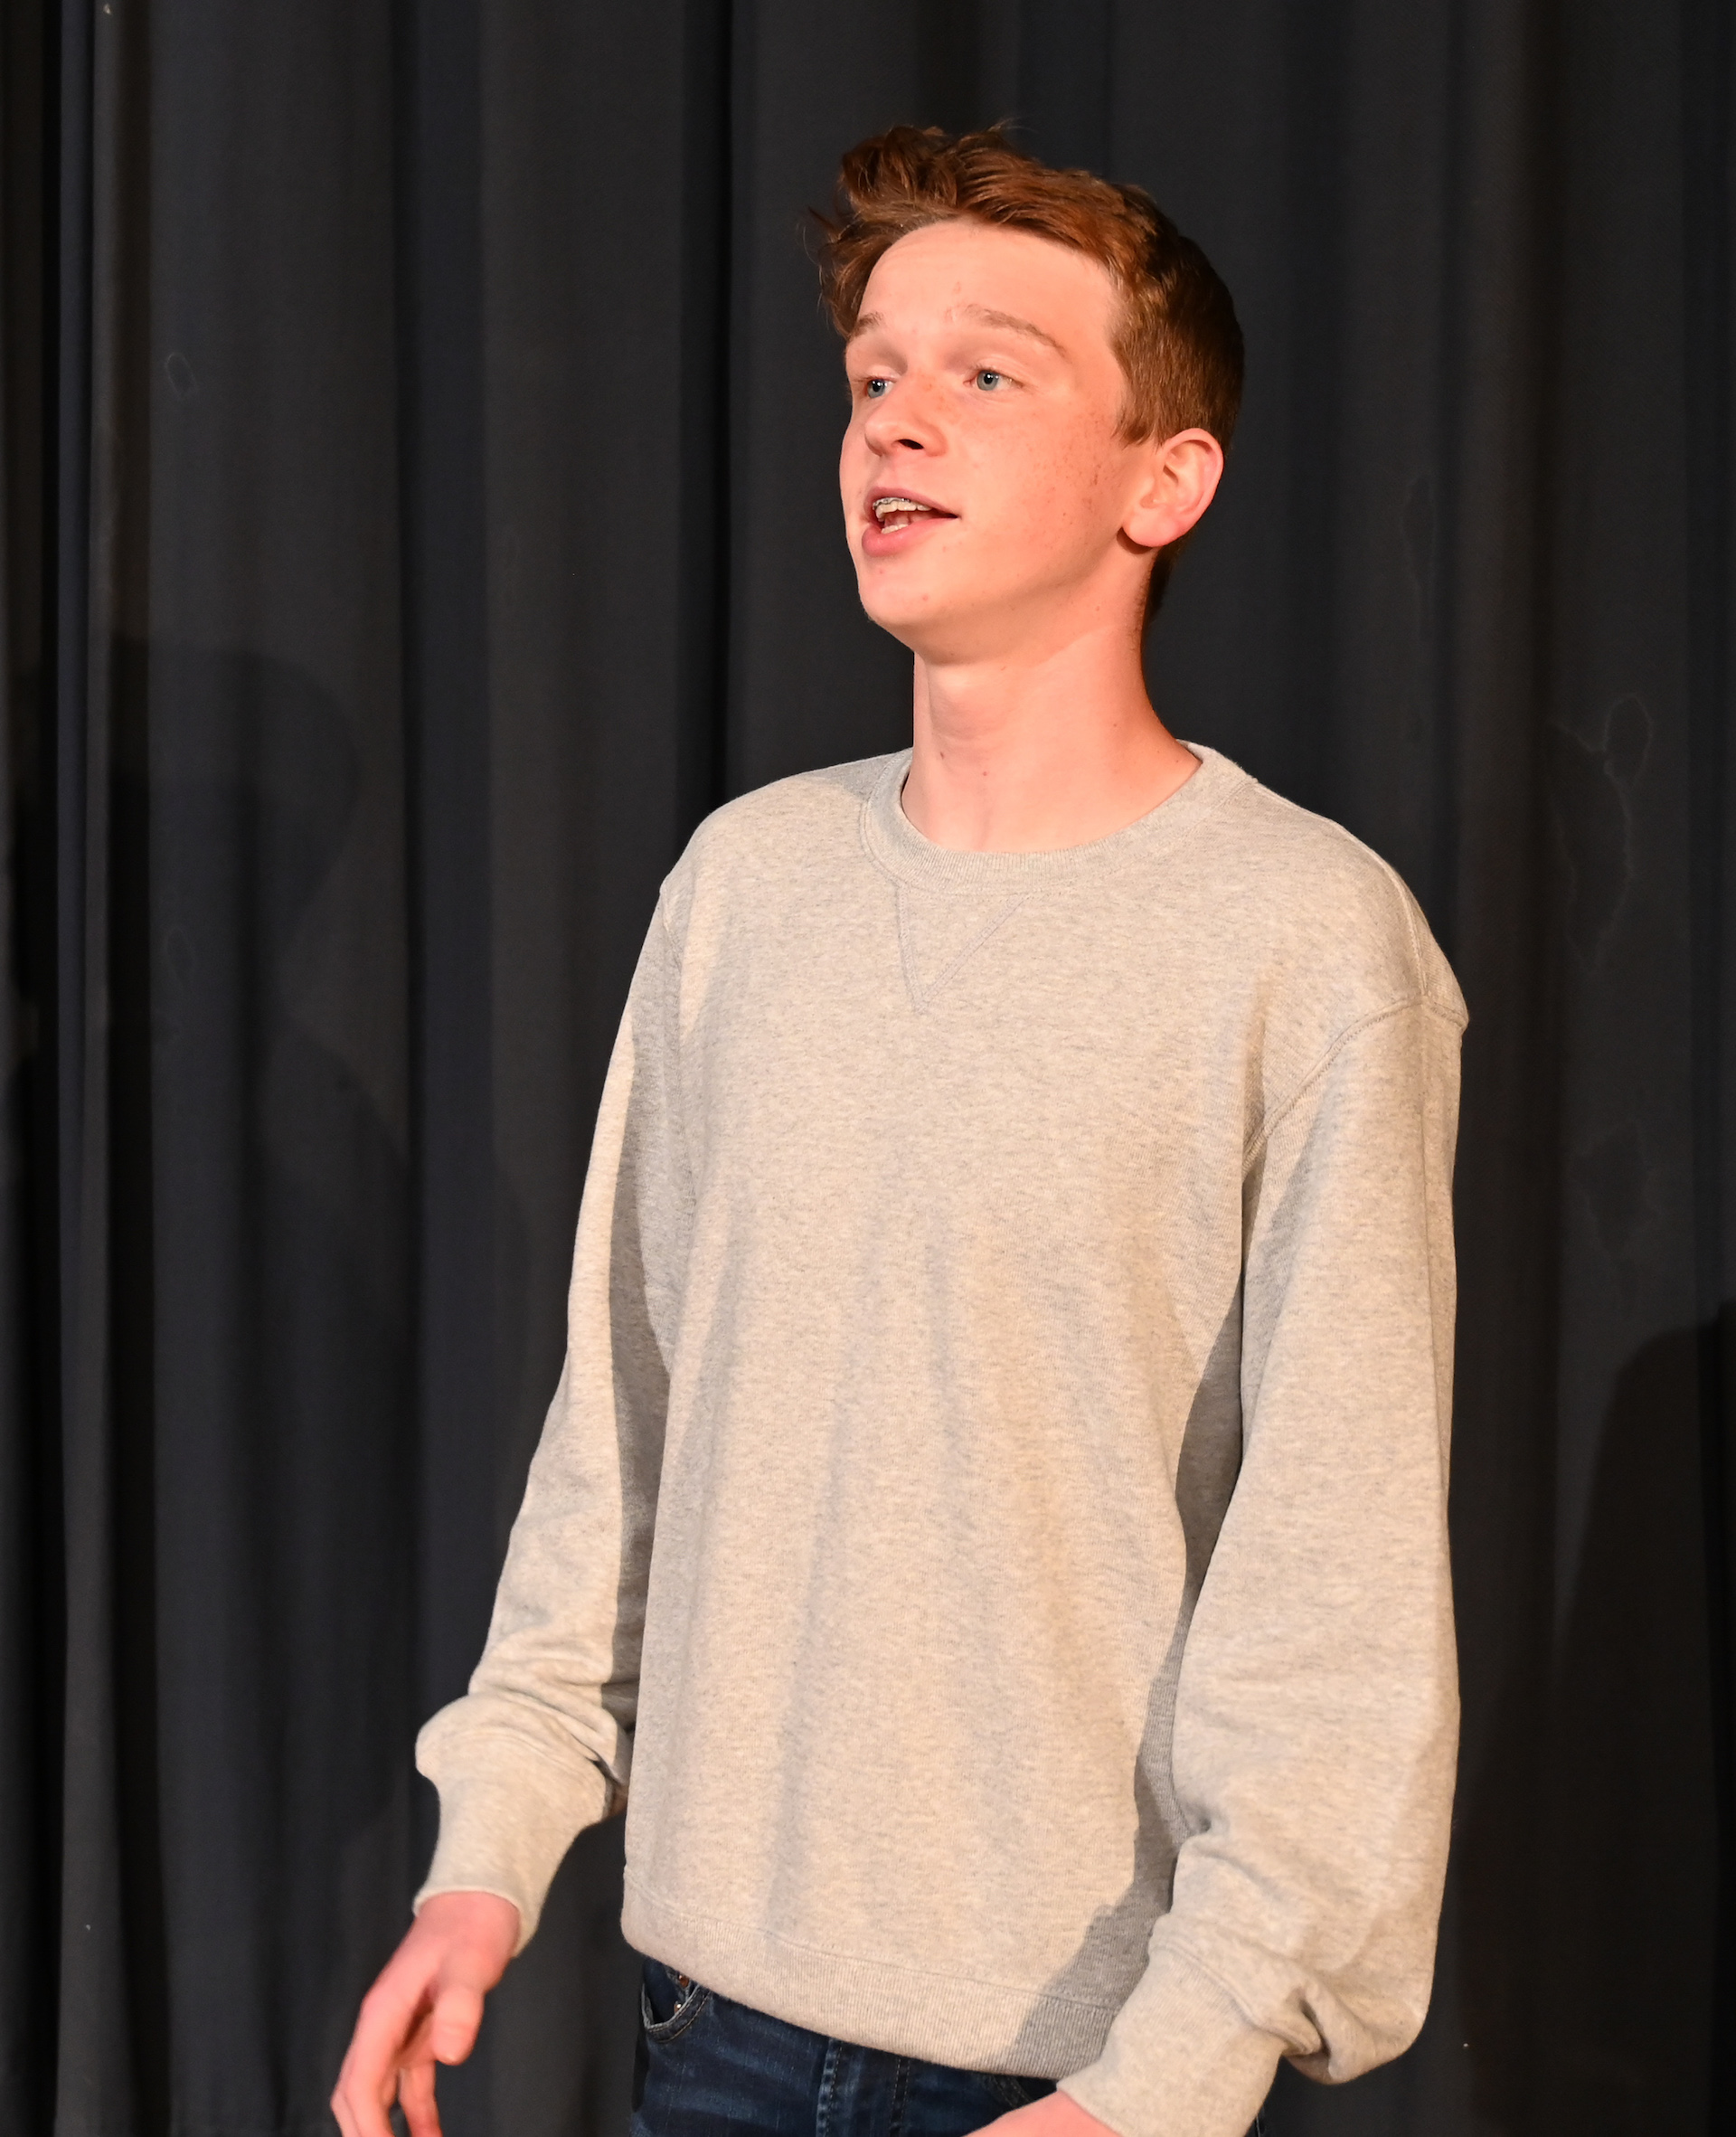 CCHS sophomore Haglund receives national recognition for vocal talent